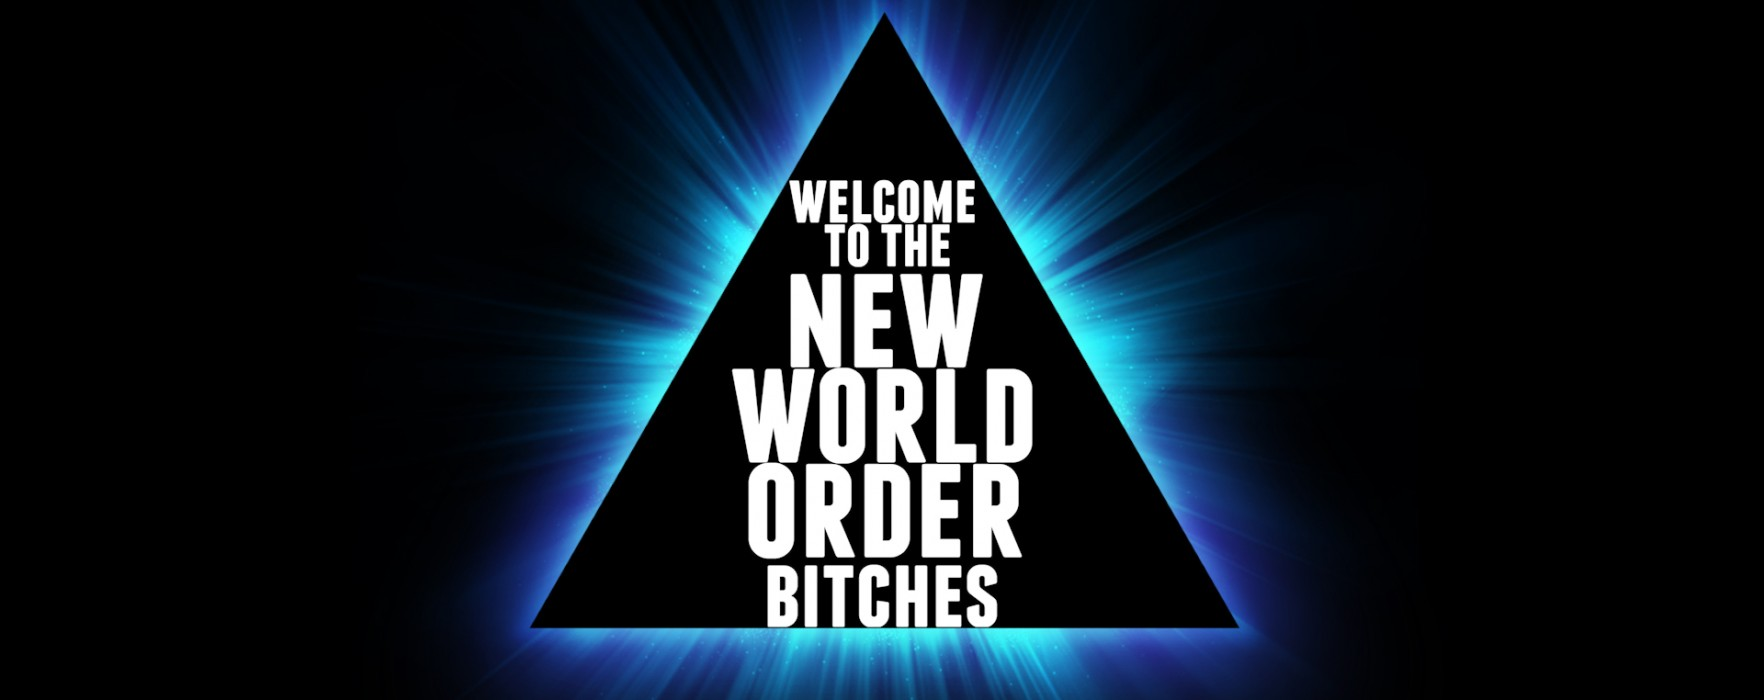 RAP NEWS 30: The New World Order